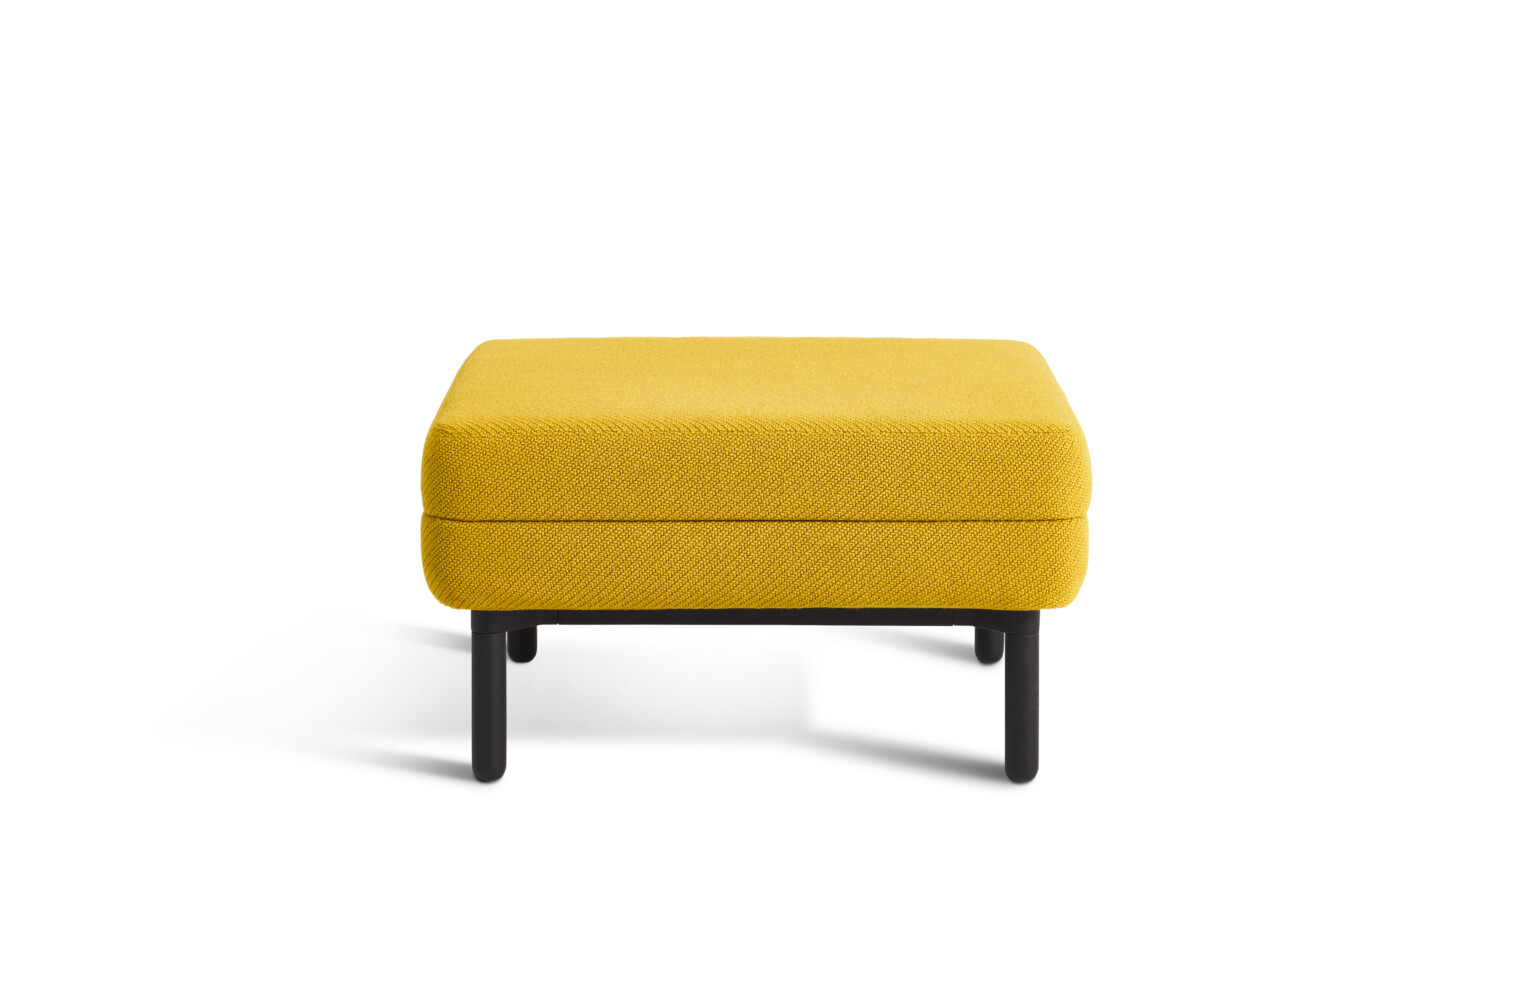 Gispen STEE pouf with black frame and upholstered in yellow front view